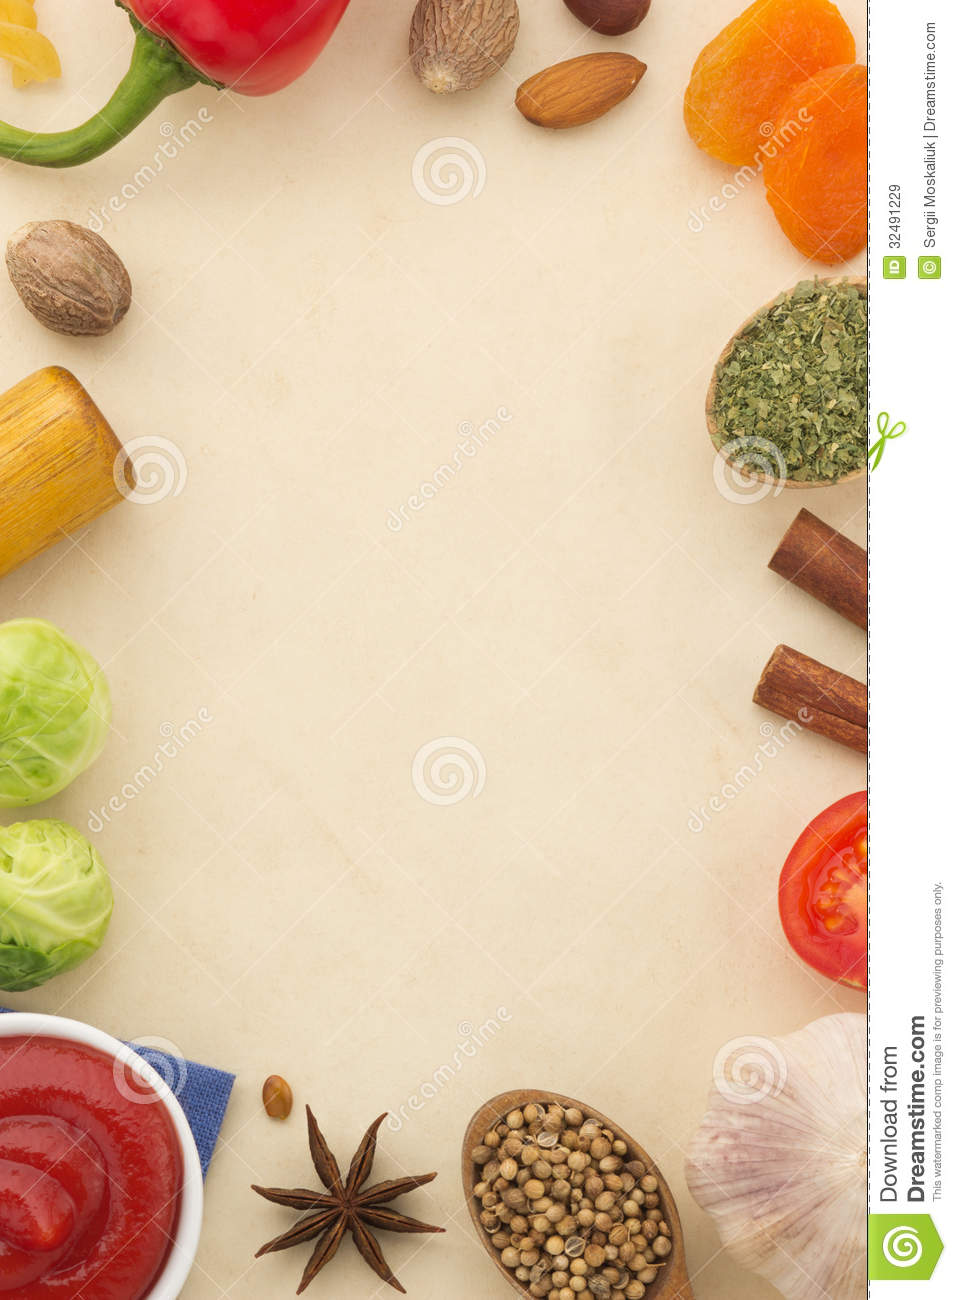 spices background and food stock image image of natural 32491229